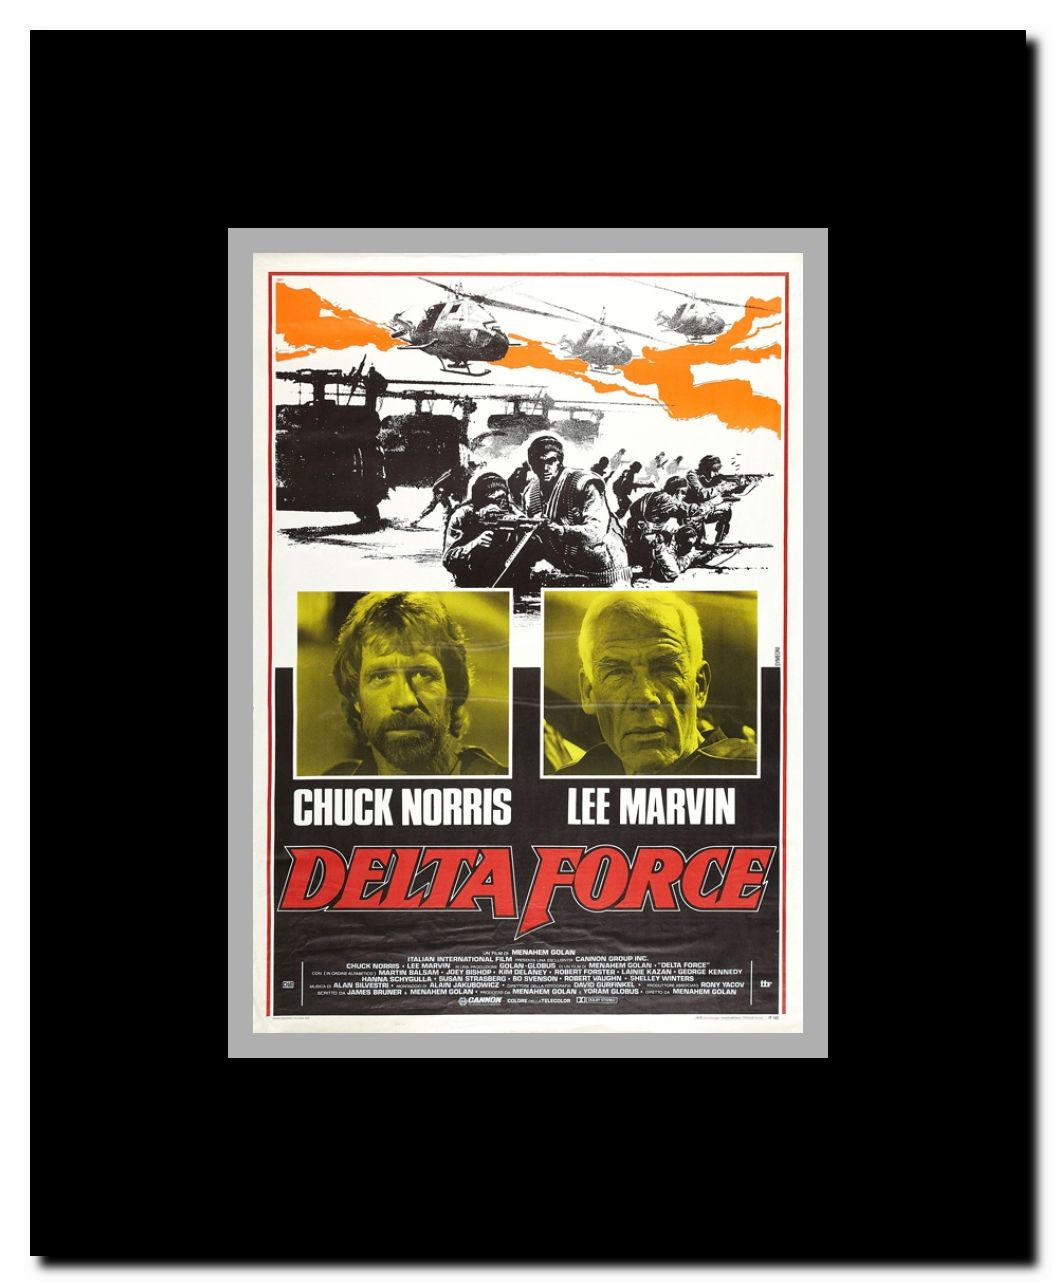 The Delta Force Framed Movie Poster Walmart Com